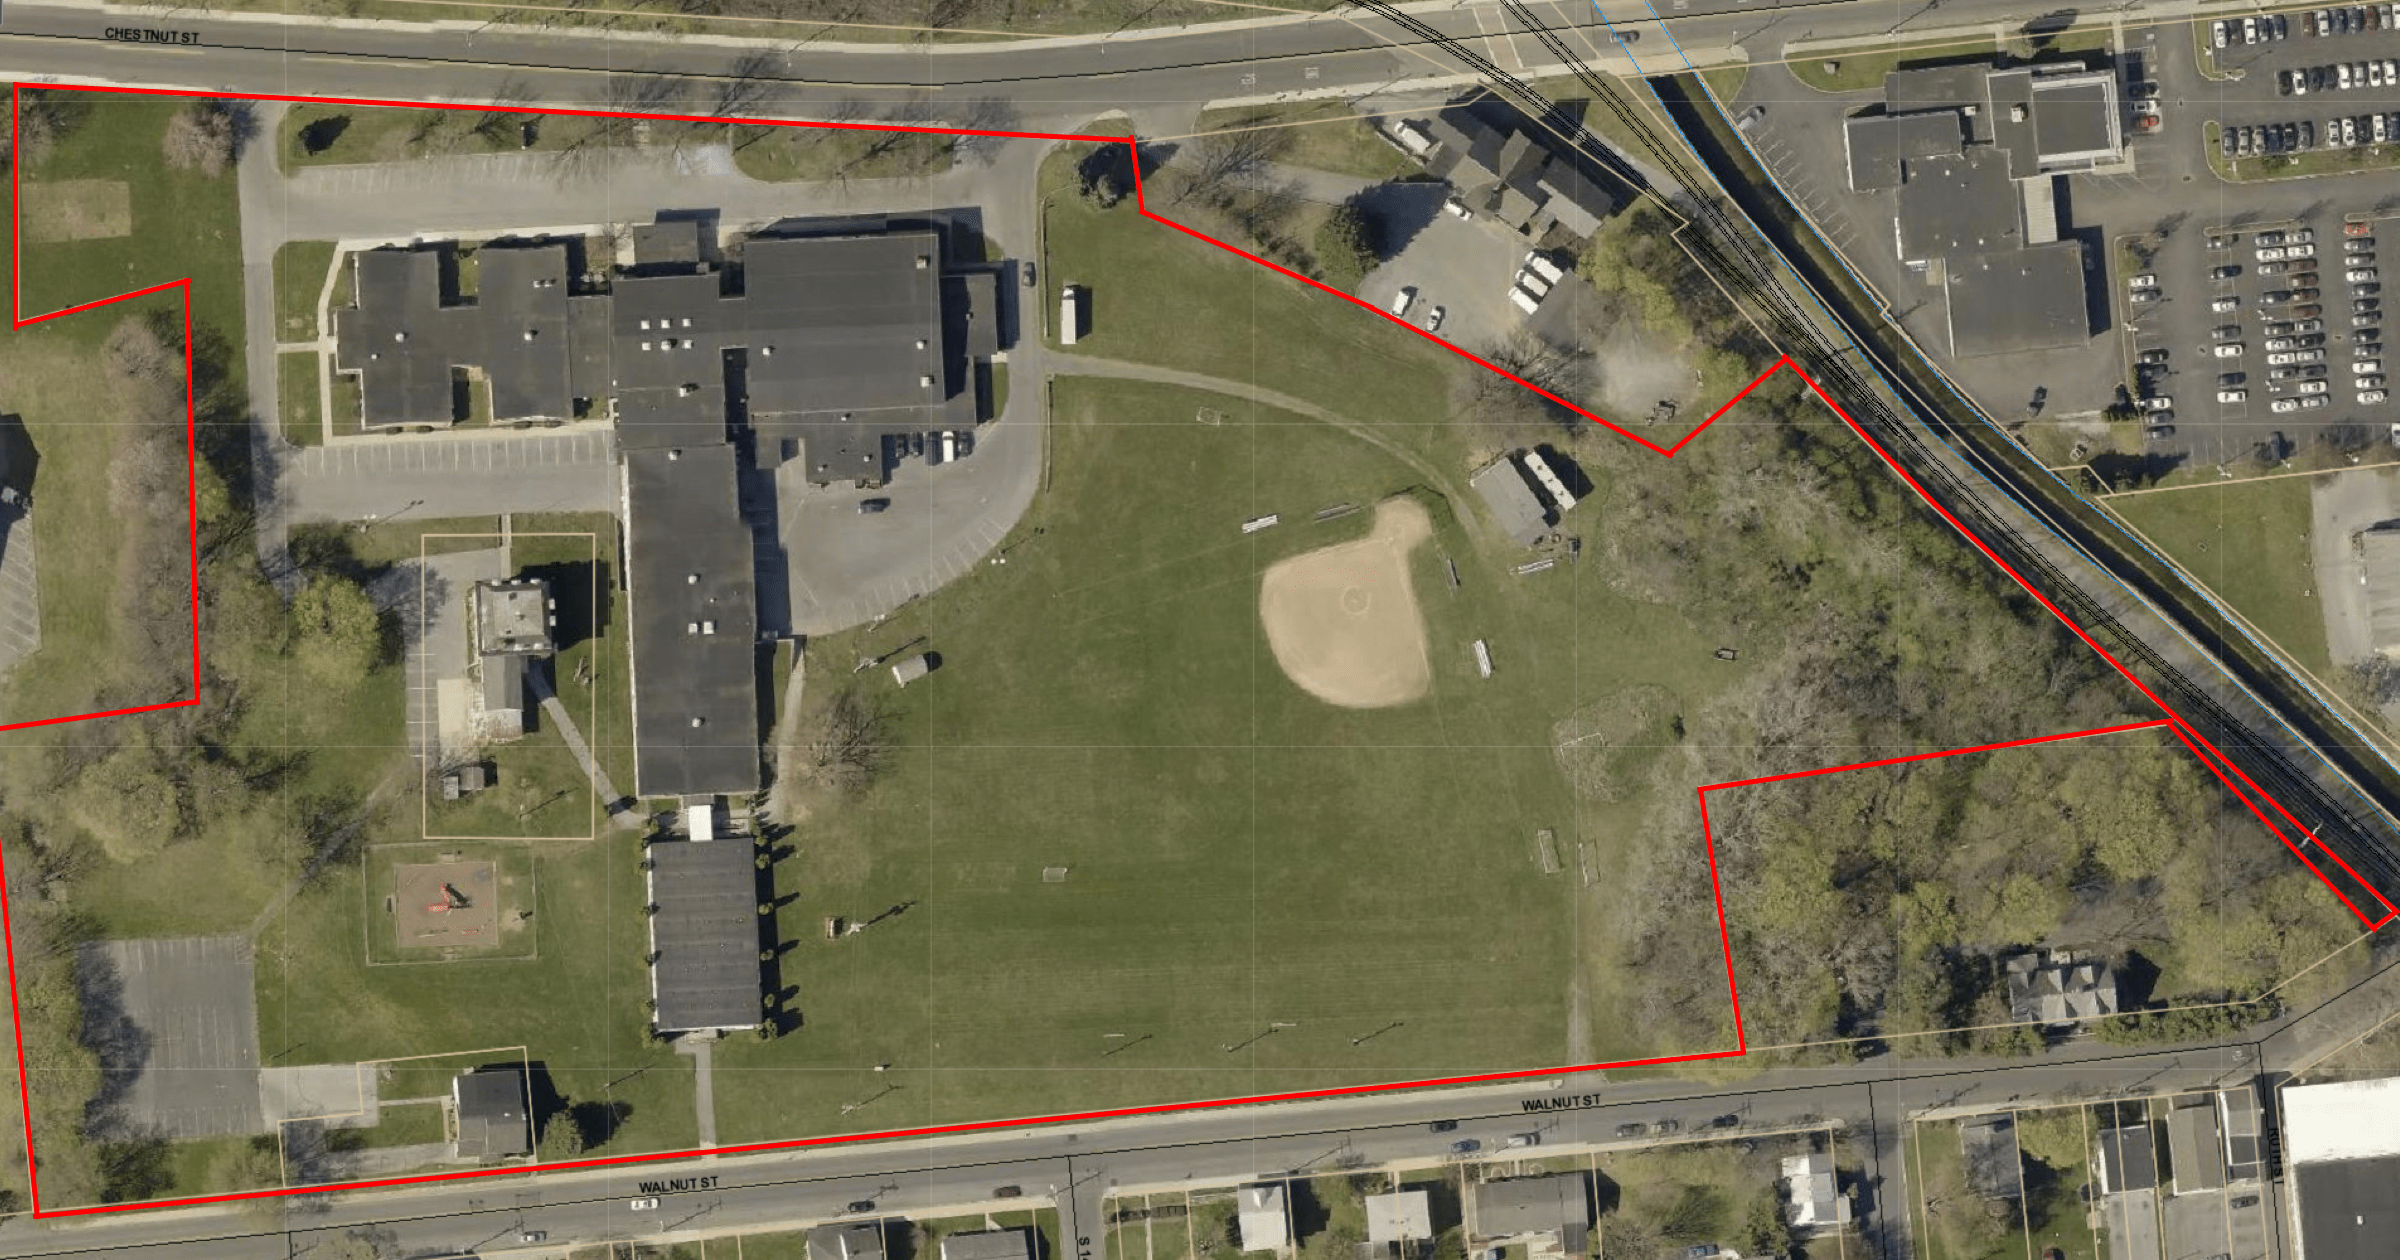 13.9 acre Lebanon Catholic campus goes on market for $2.45 million